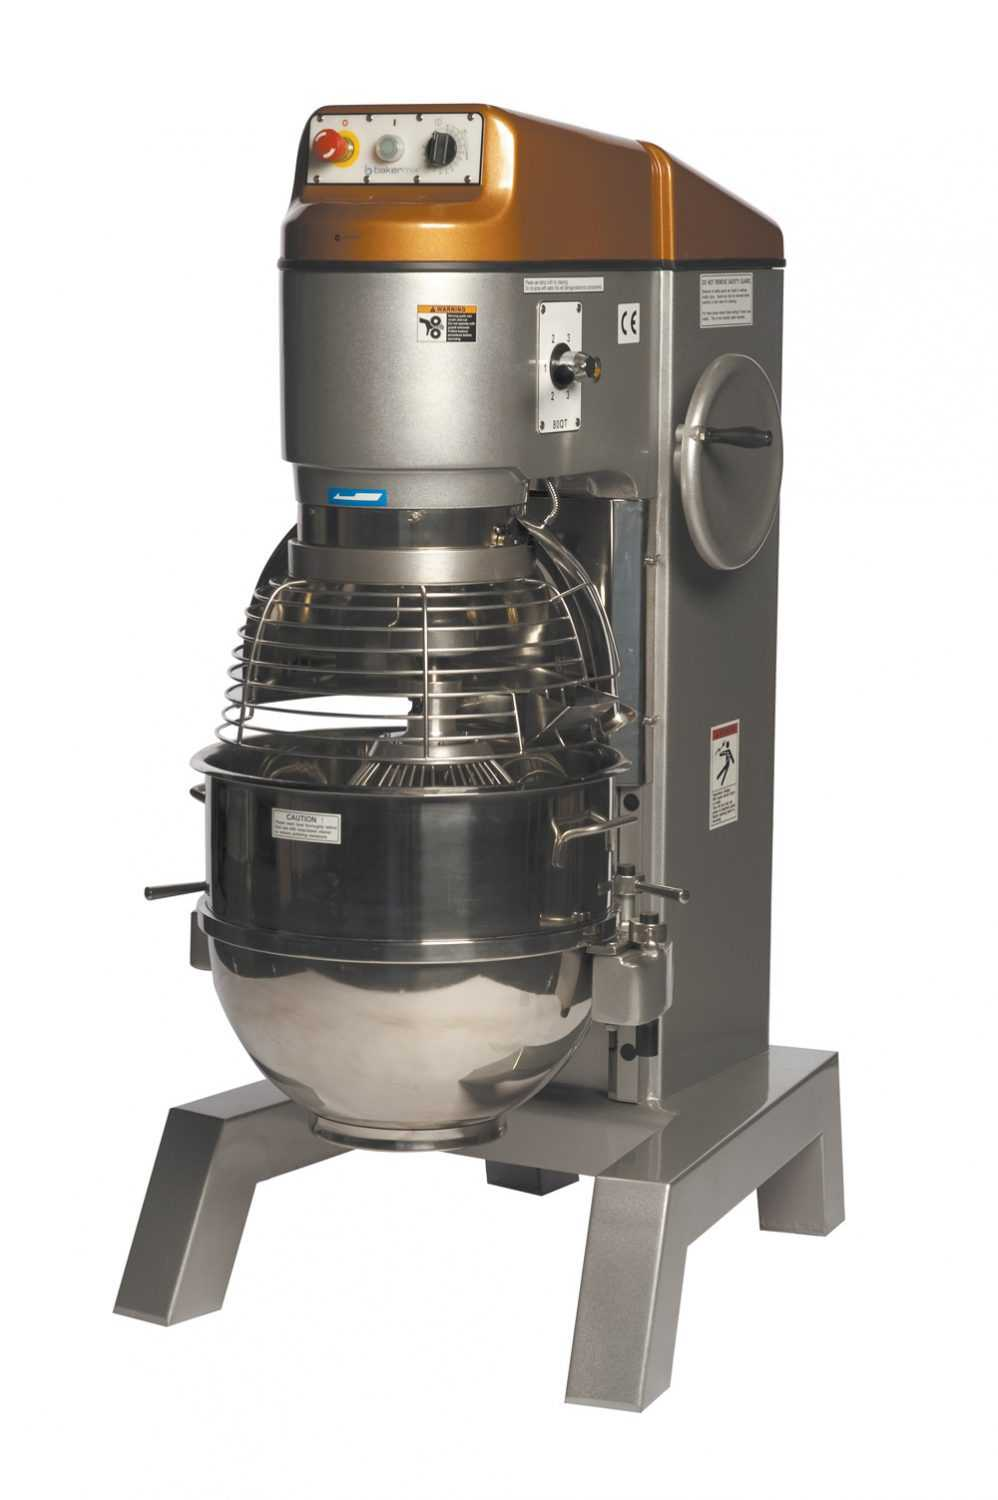 Robot Coupe SP80HI – Planetary Mixer